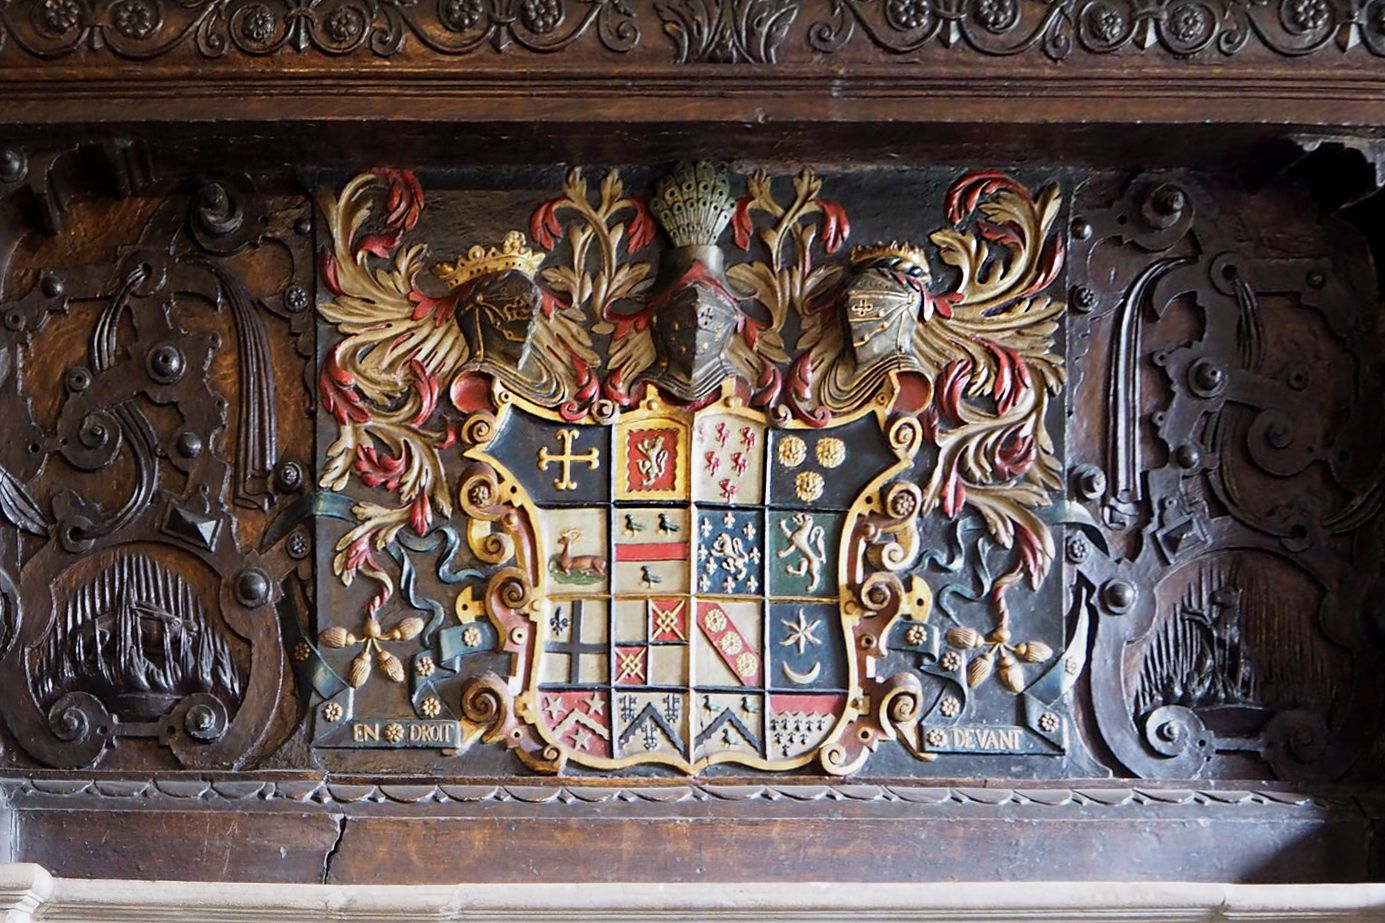 Coat of arms the legh family in ticket office at